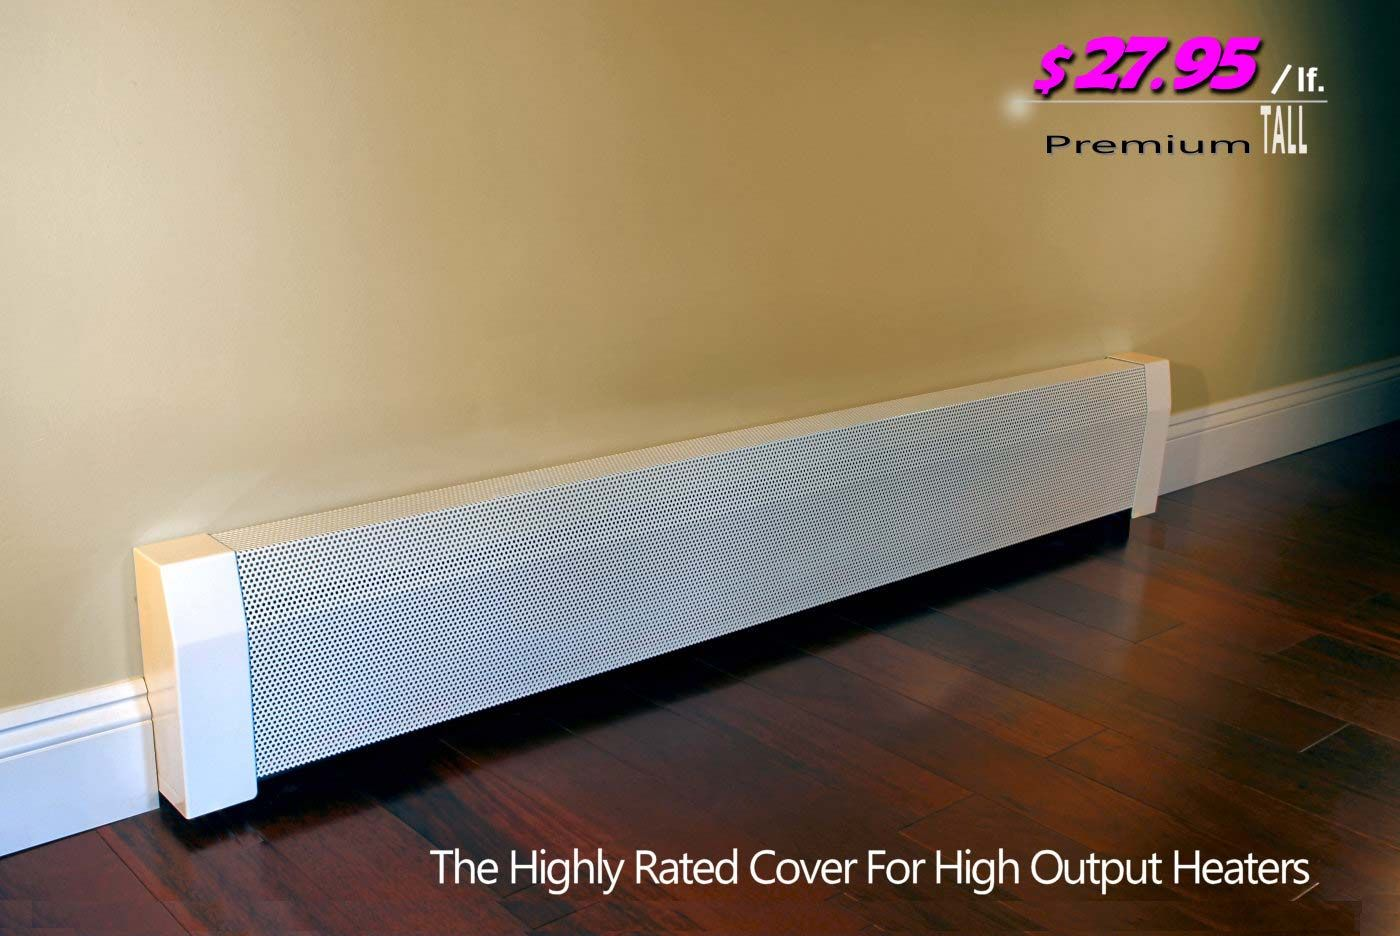 Baseboard Heater Covers Shipped To You Direct Diy Installation Baseboard Heater Covers Baseboard Heater Heater Cover